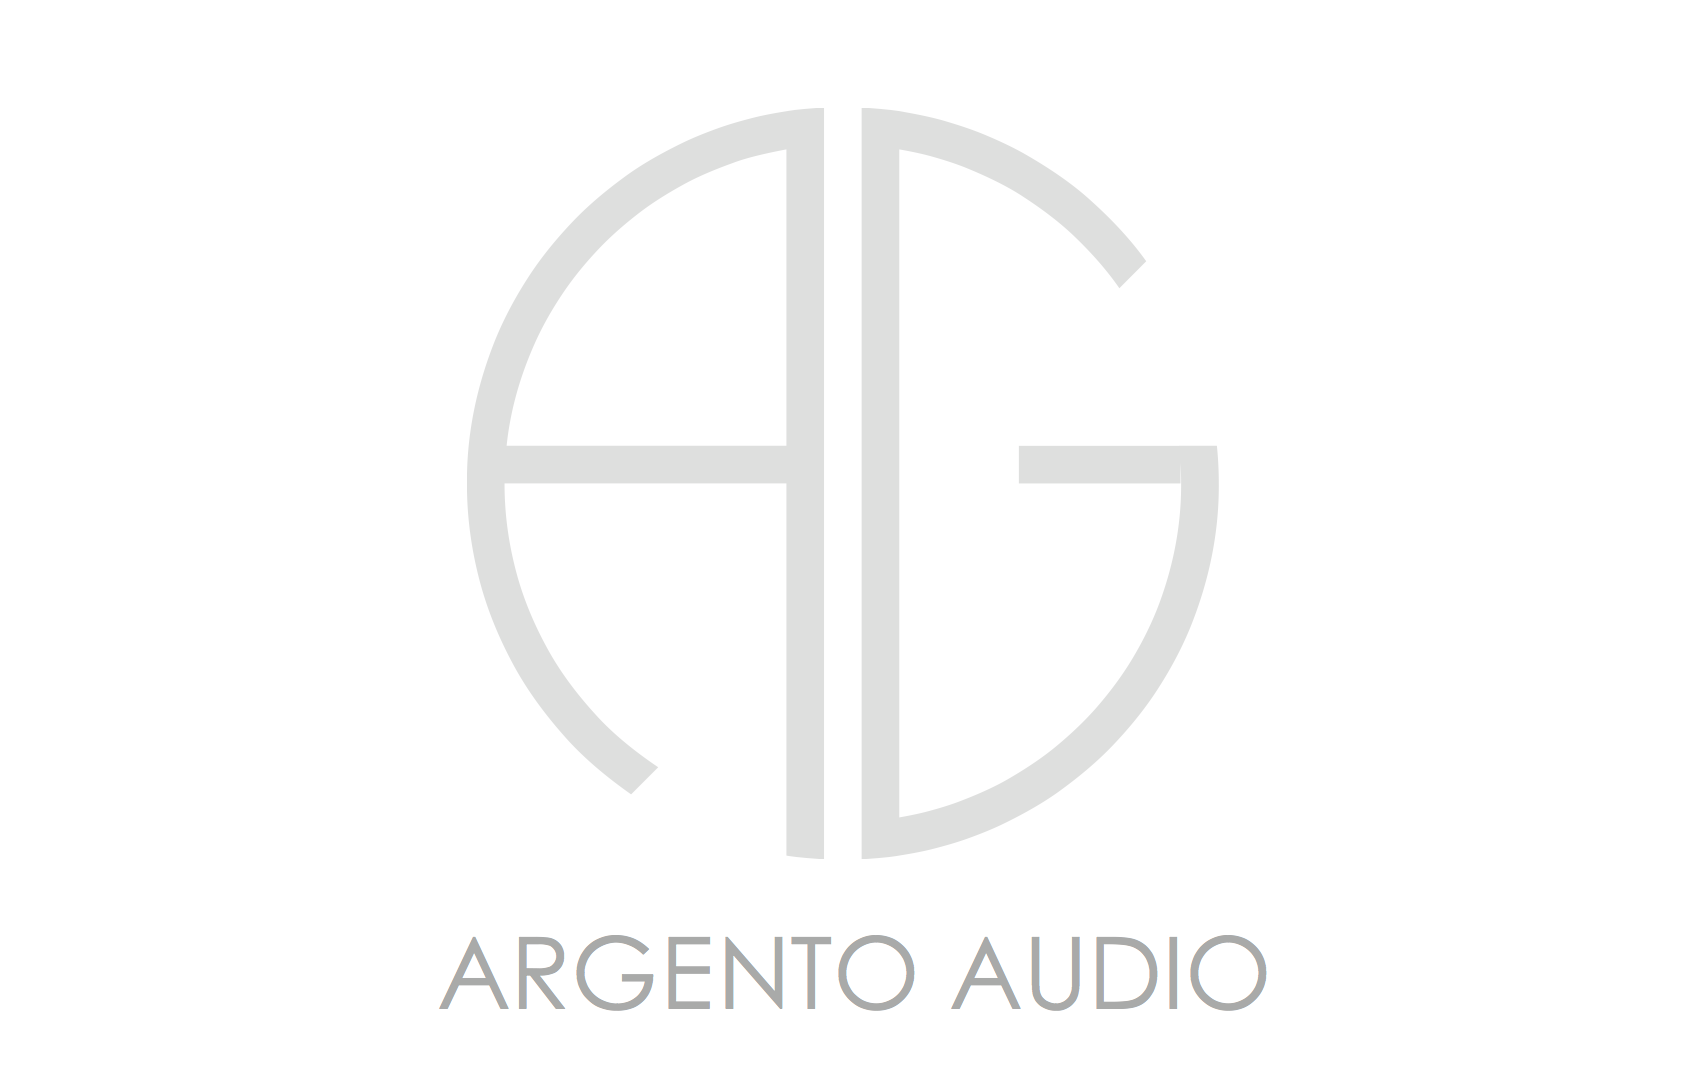 "Argento Audio cables represent an absolute performance standard in high end audio signal transmission and brings you a lot closer to a live performance in your music room. Handcrafted to the finest quality in Denmark, every single element of the cable construction is custom designed and made to exacting specifications. Argento does not come from the ""shopping trolley"" school of cable manufacturers."